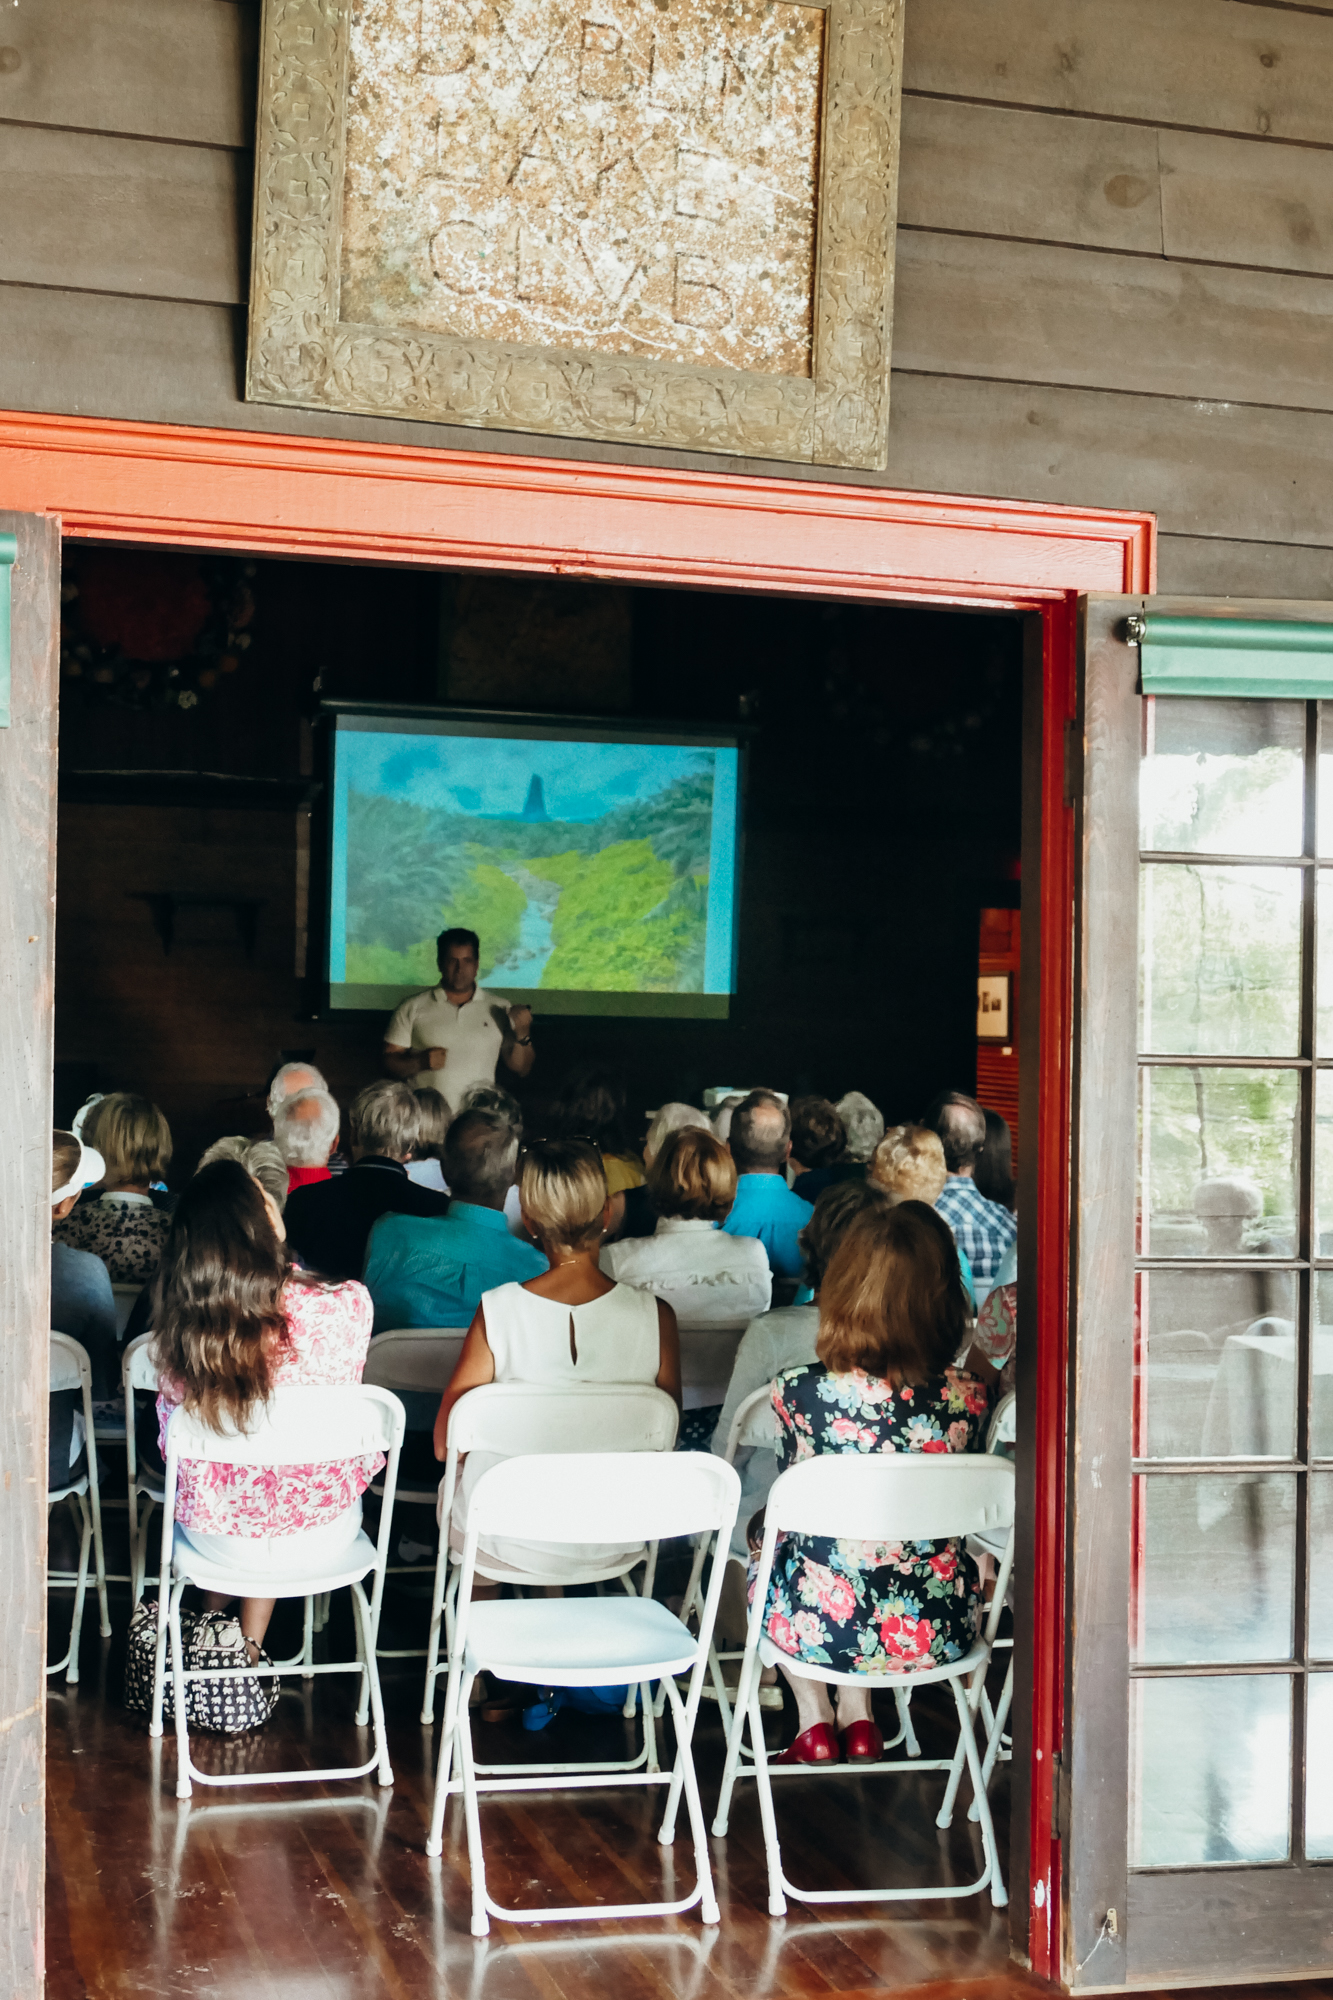 A photographer gives a talk in front of an audience in a wooden building in Dublin, New Hampshire.